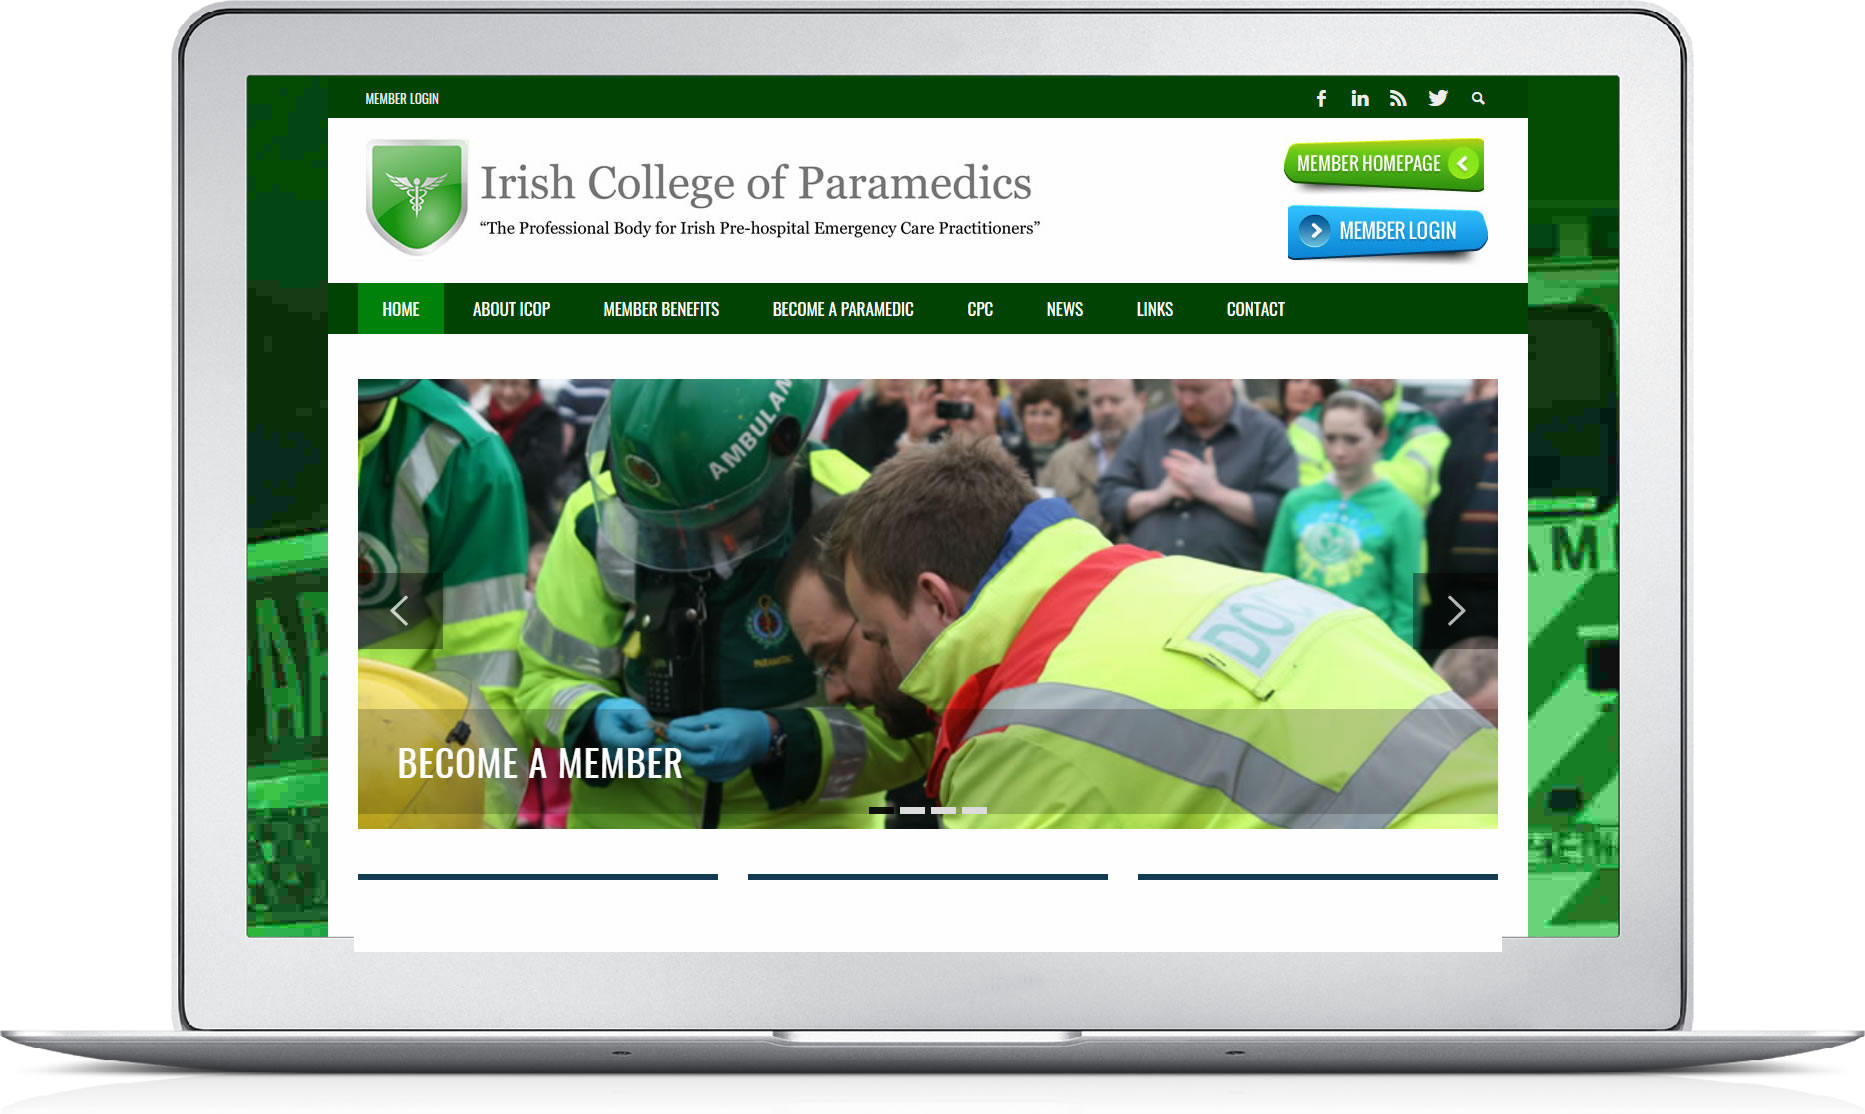 Irish College of Paramedics